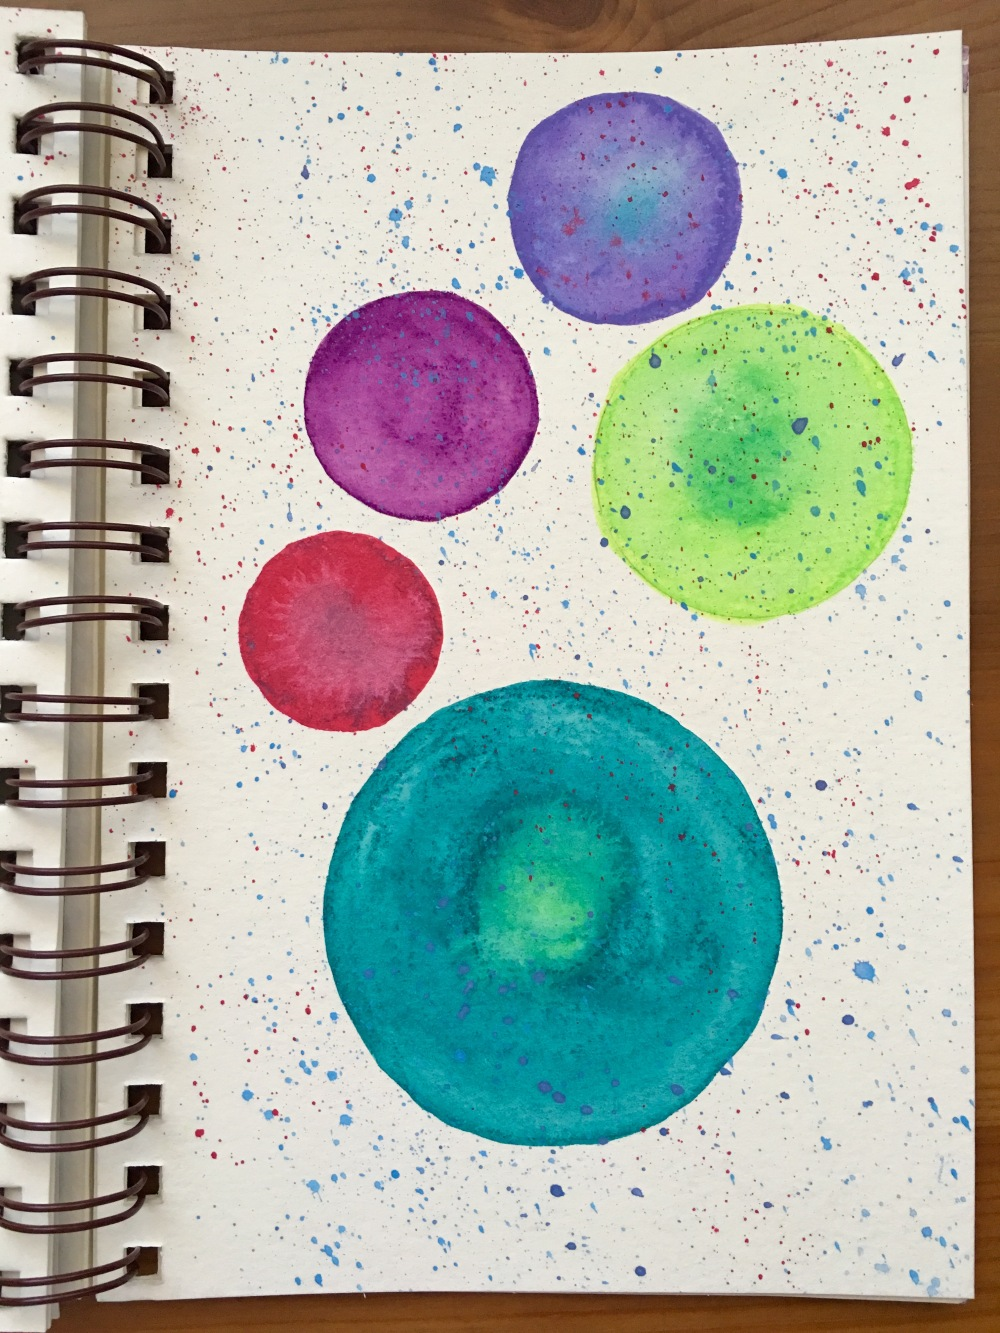 Large dots and splatters done with Caran D'Ache Neocolor II water-soluble was oil pastels